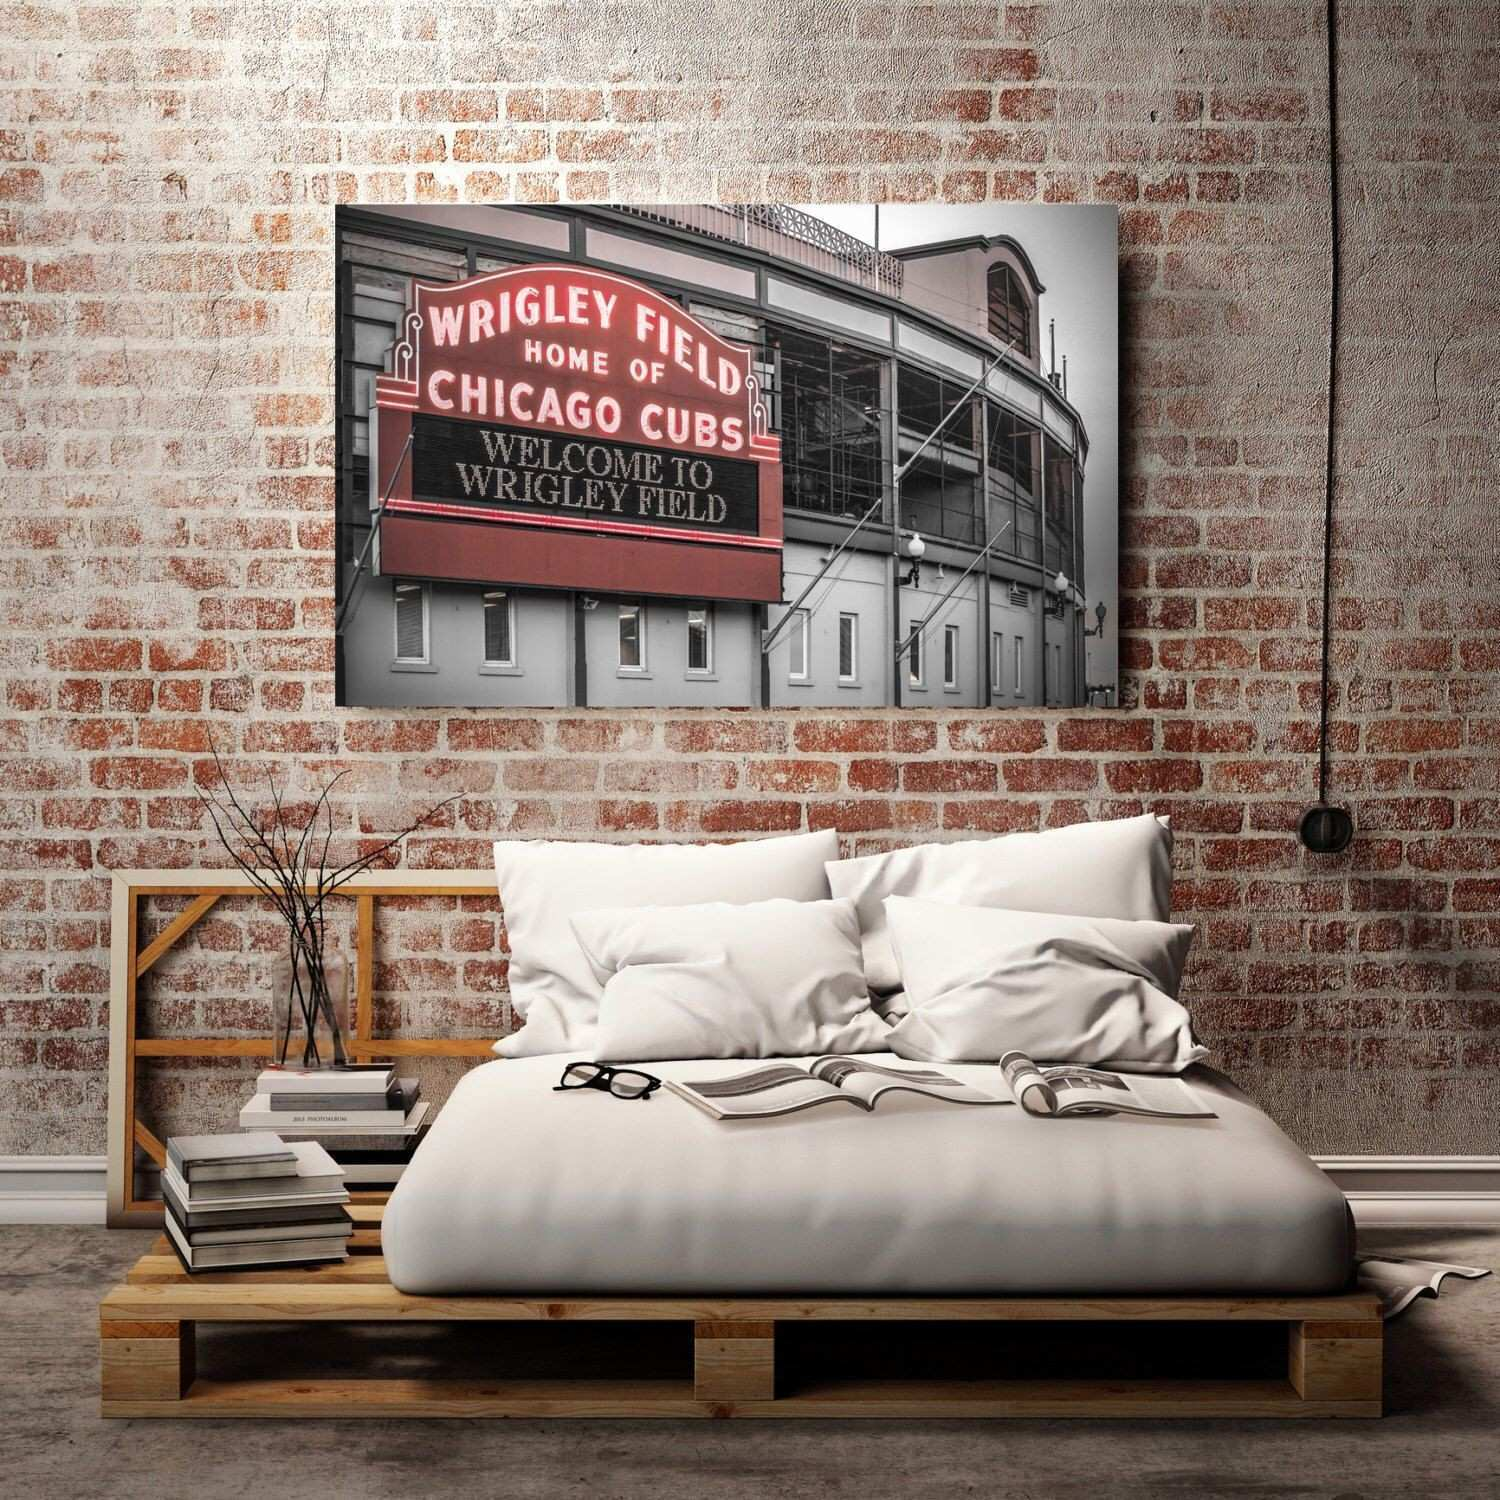 32 Beautiful Chicago Cubs Canvas Wall Art Inspirational Metal Mirror